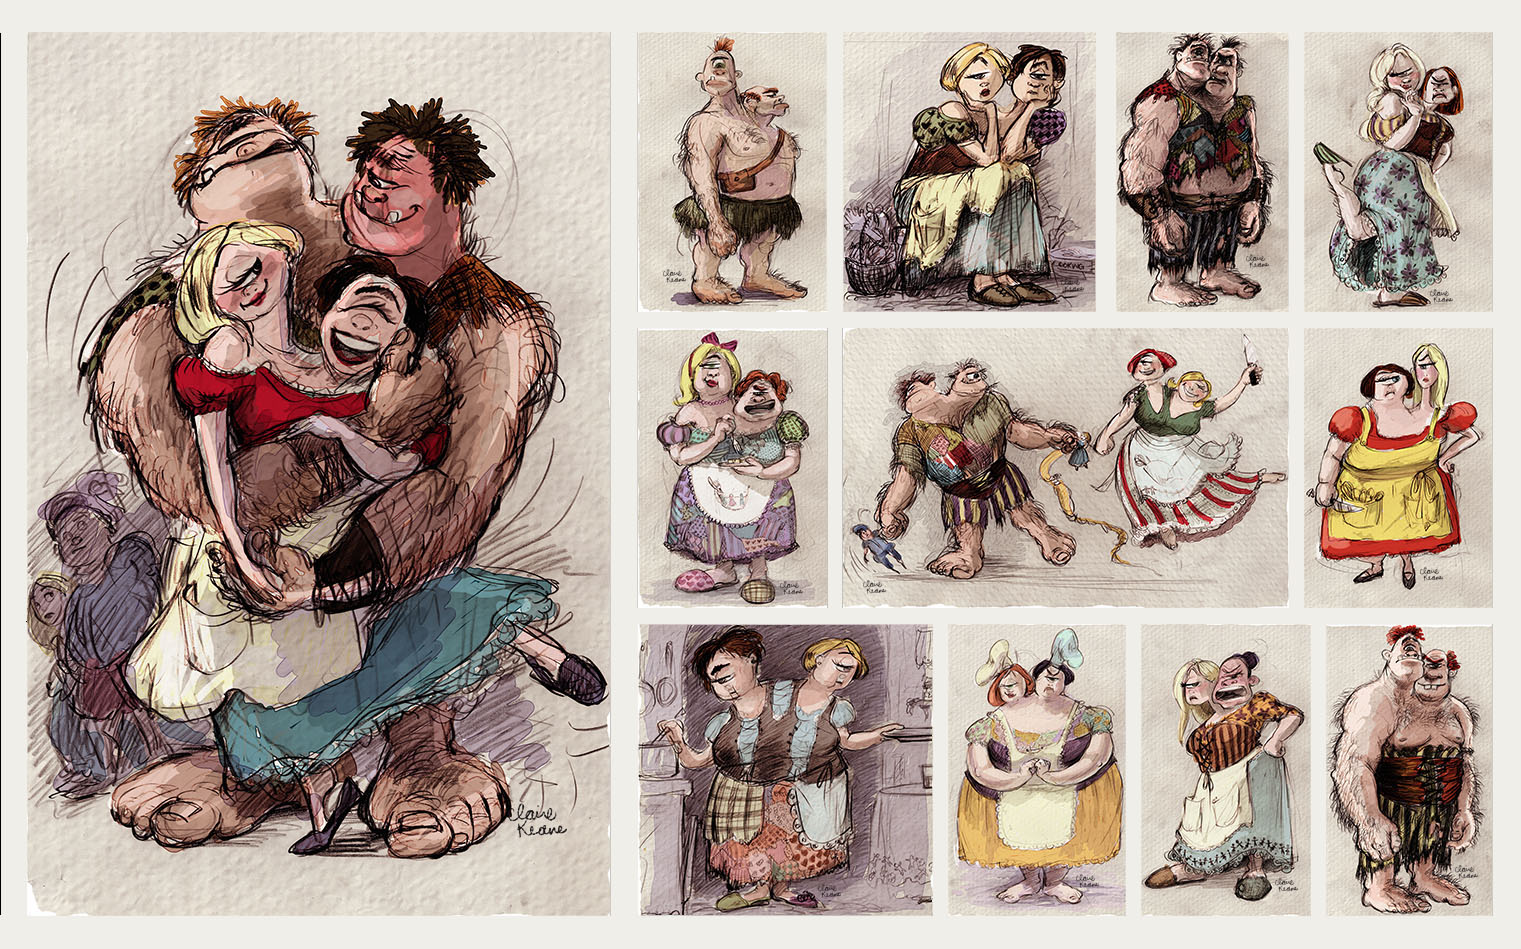 TWO HEADED OGRE CYCLOPS COUPLE //VISUAL DEVELOPMENT FOR TANGLED / RAPUNZEL UNBRAIDED